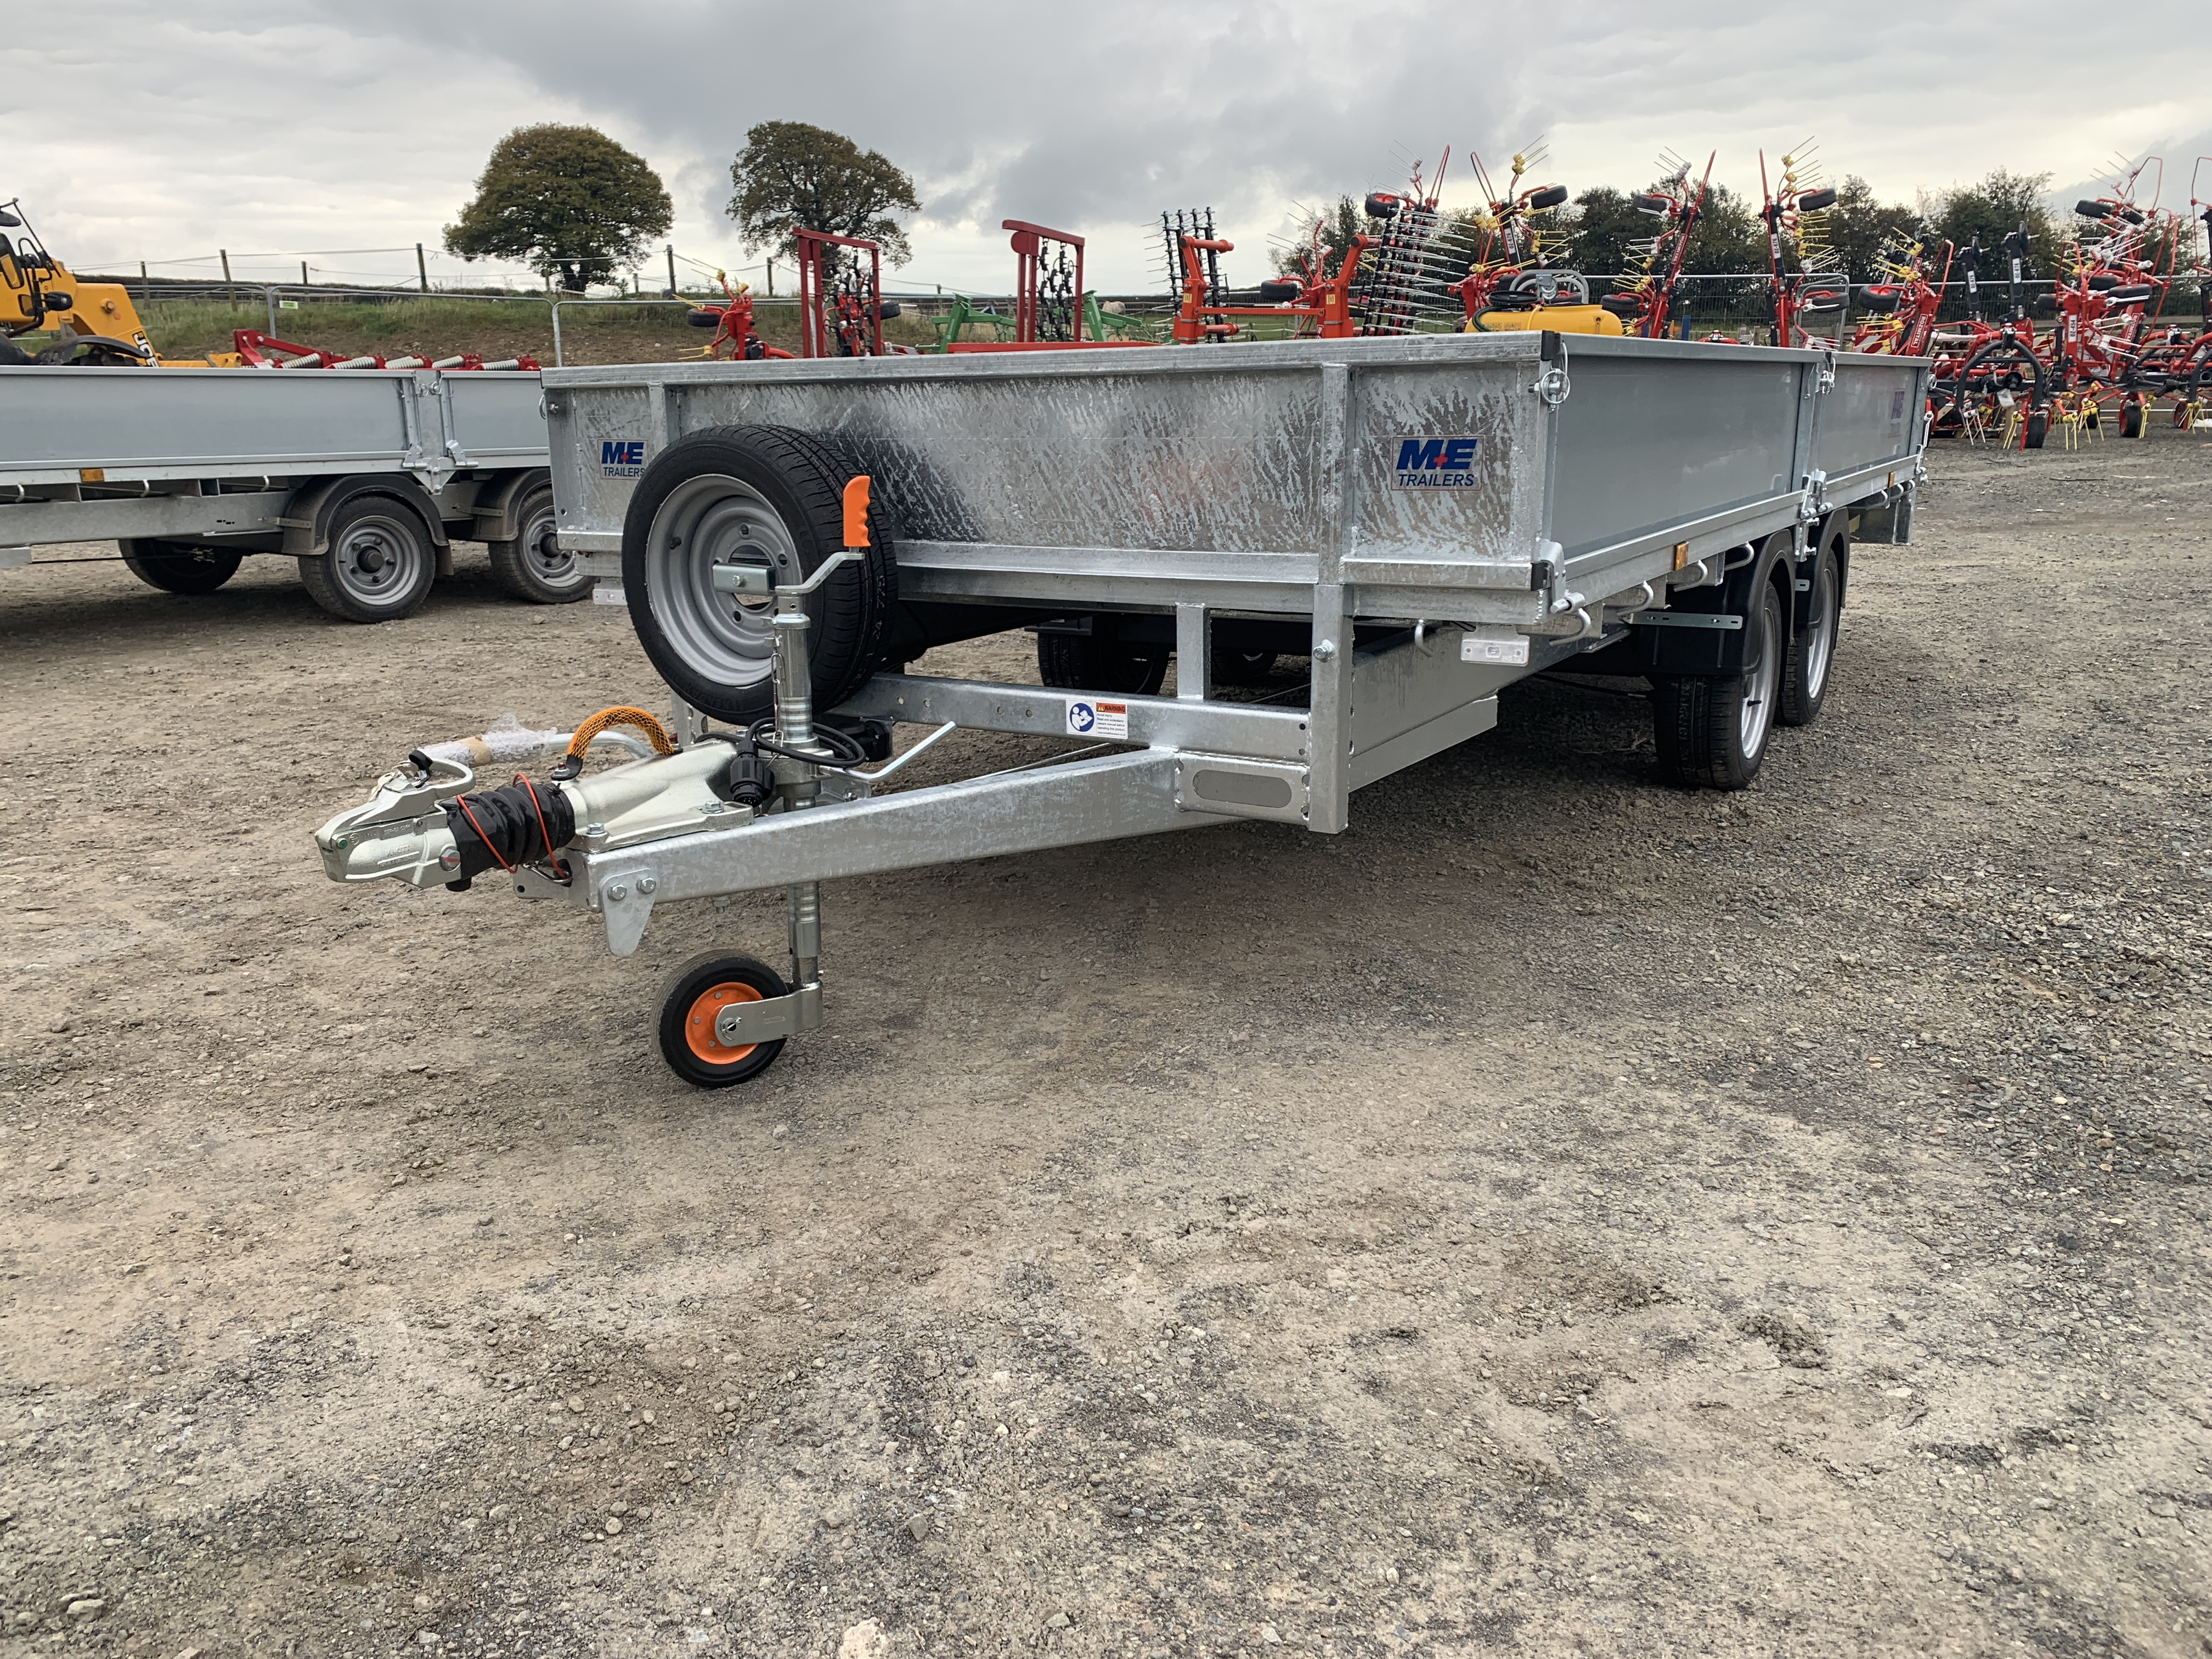 An unloaded Meredith and Eyre flat bed car trailer with drop down sides, led lights and aluminium ramps.